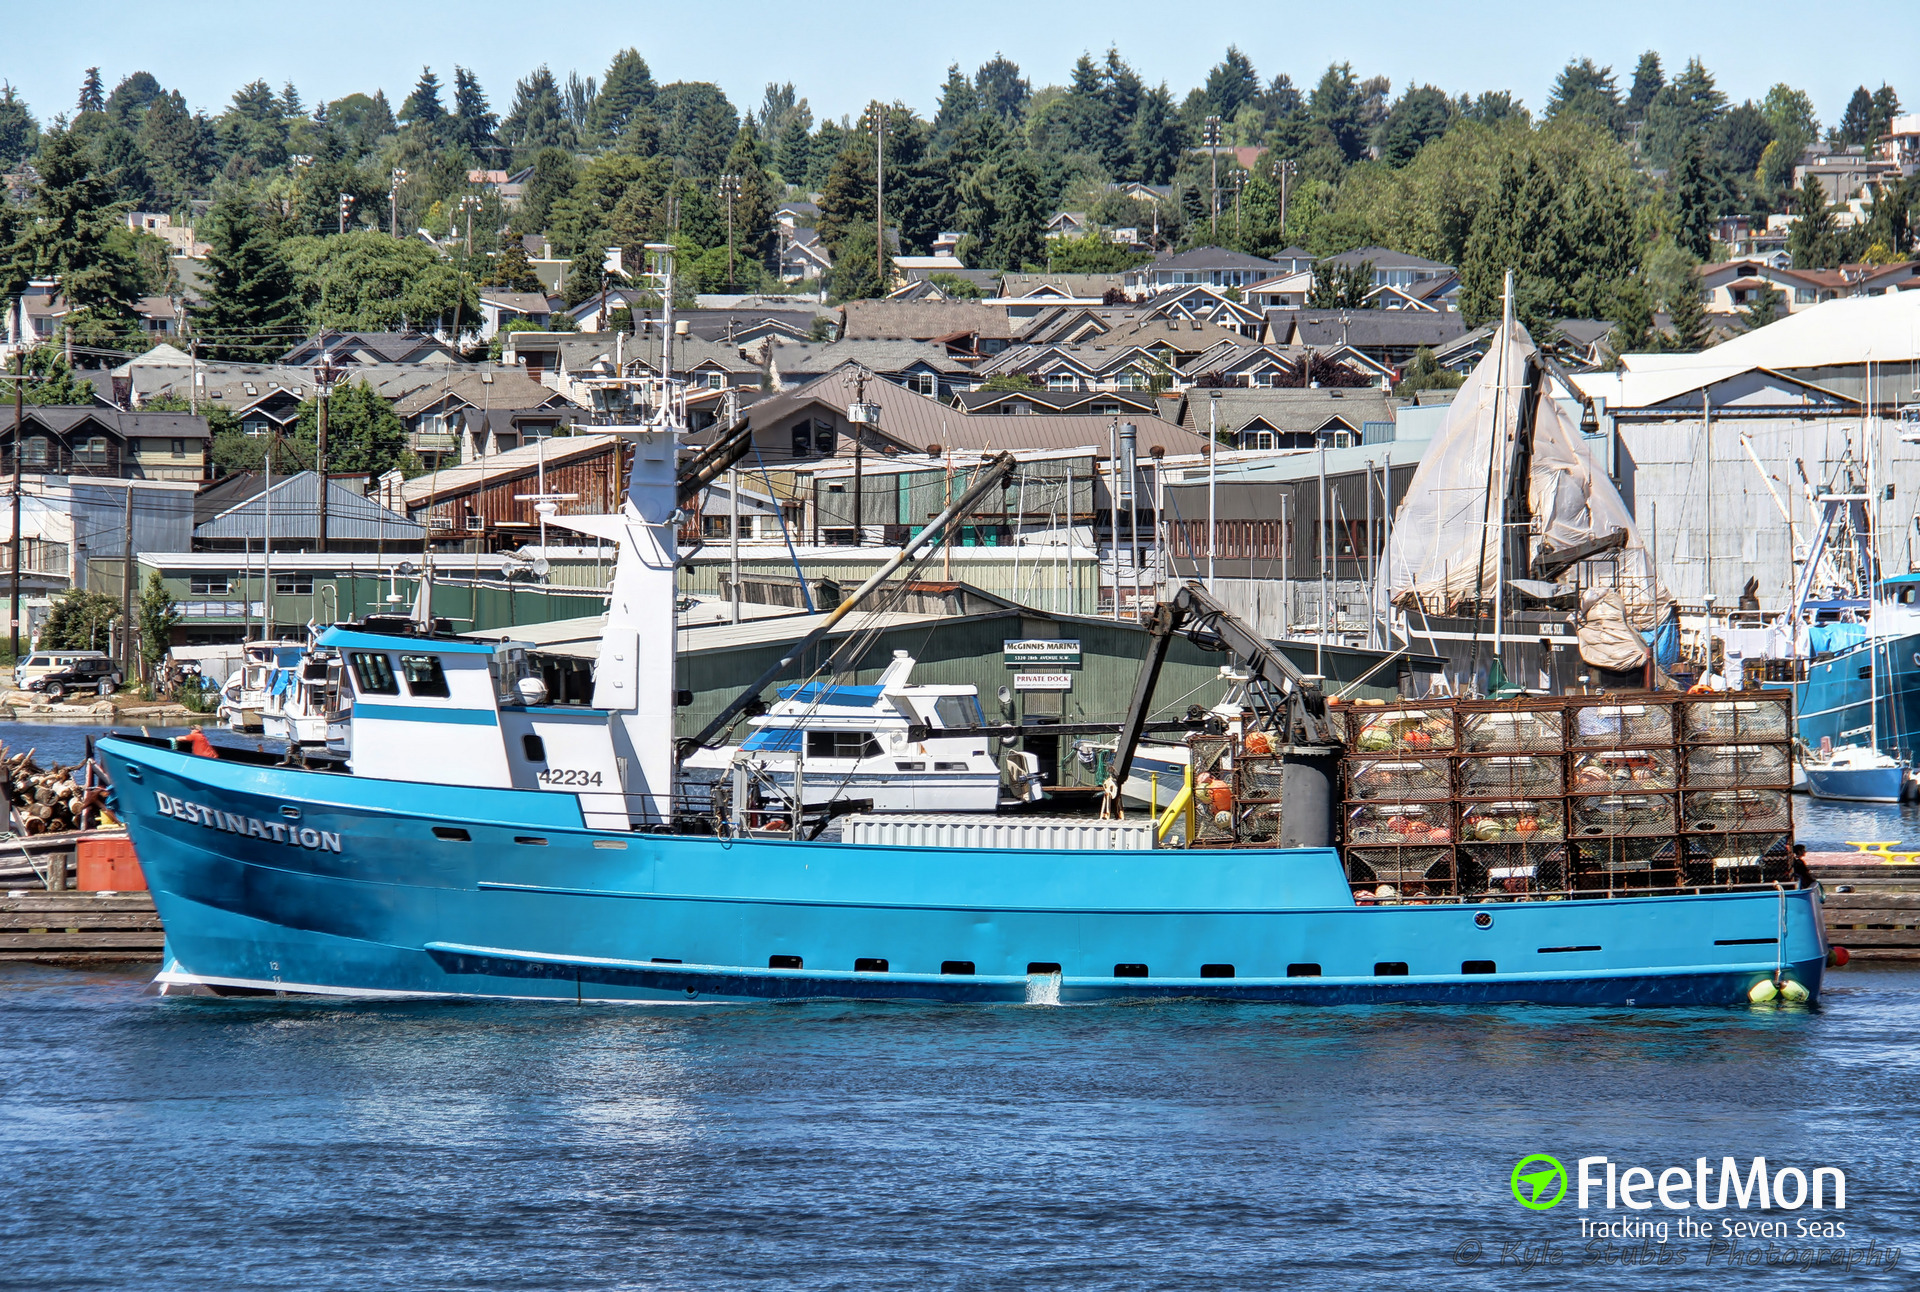 destination fishing vessel imo 8853116